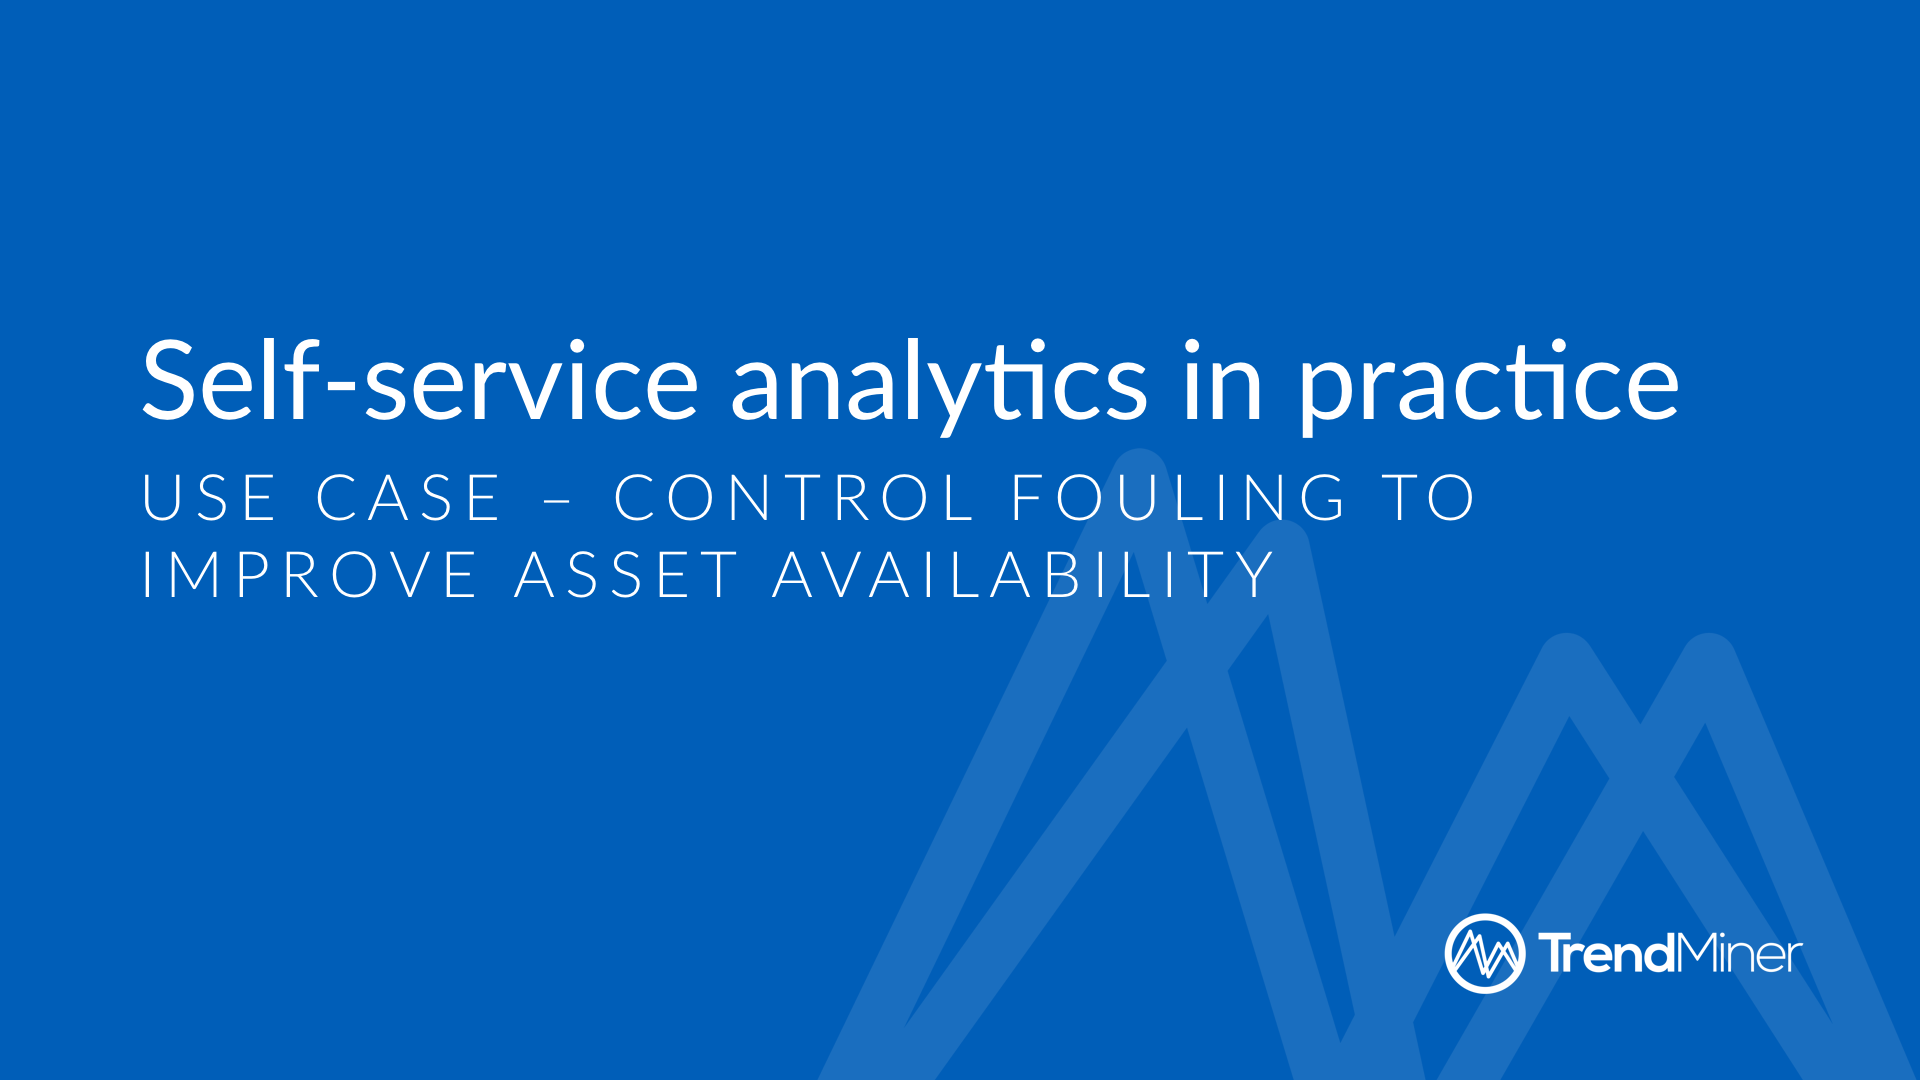 Use case: Control fouling to improve asset availability